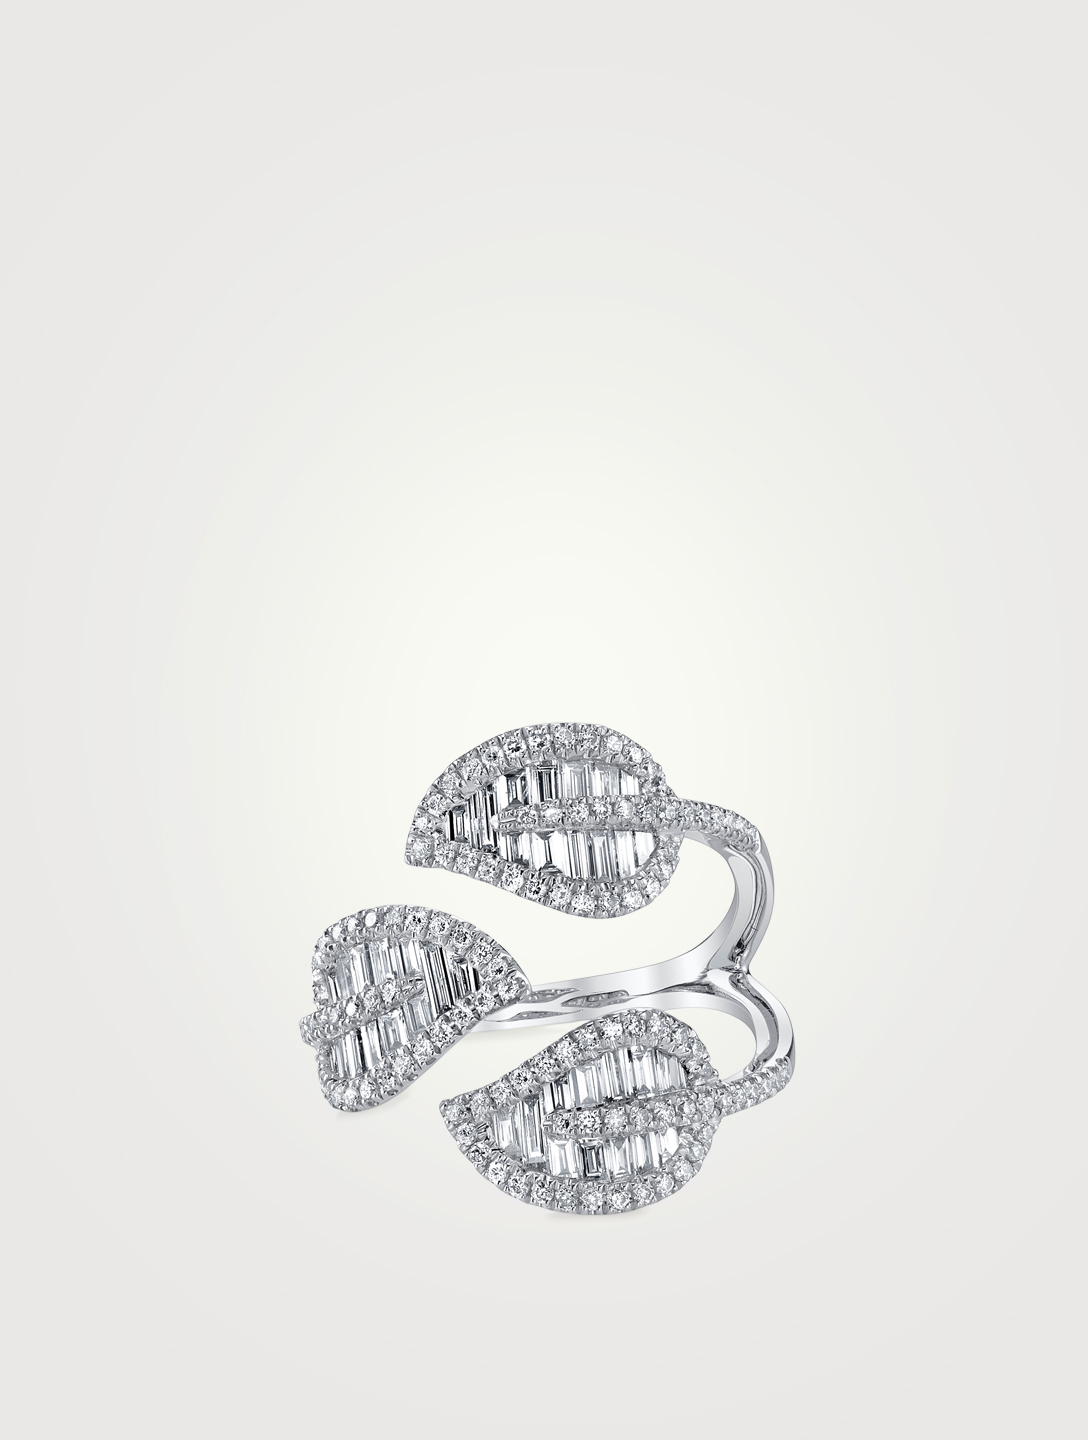 ANITA KO 18K White Gold Three Leaves Ring With Diamonds Womens Silver